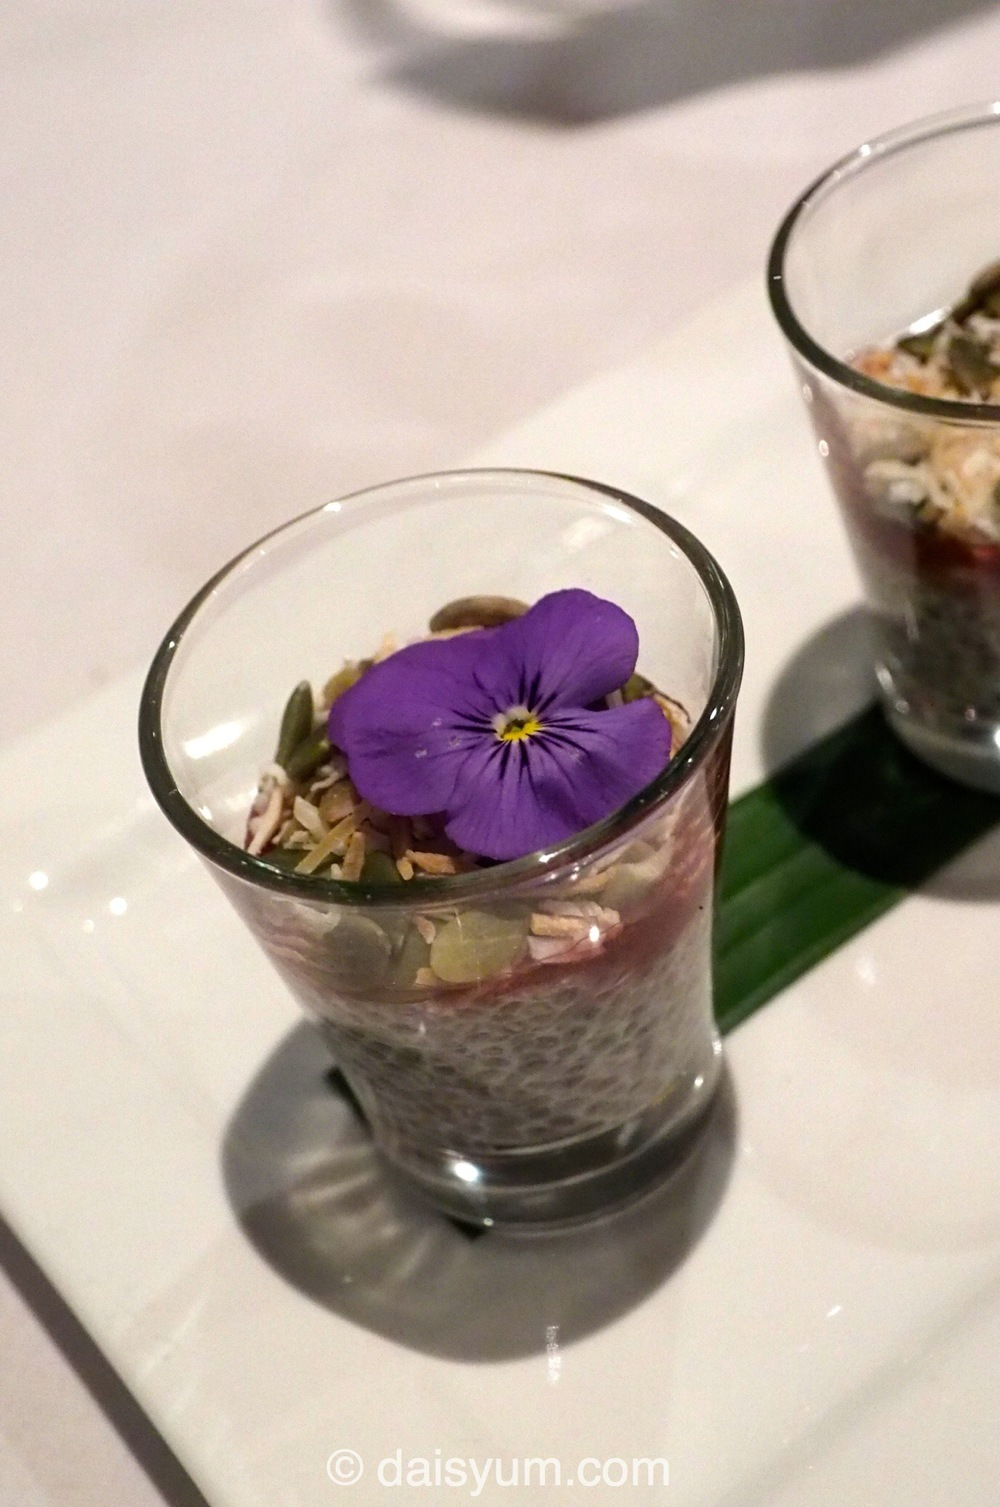 Mini Chia Pudding shot with Davidson plum jelly, coconut & peptic seeds